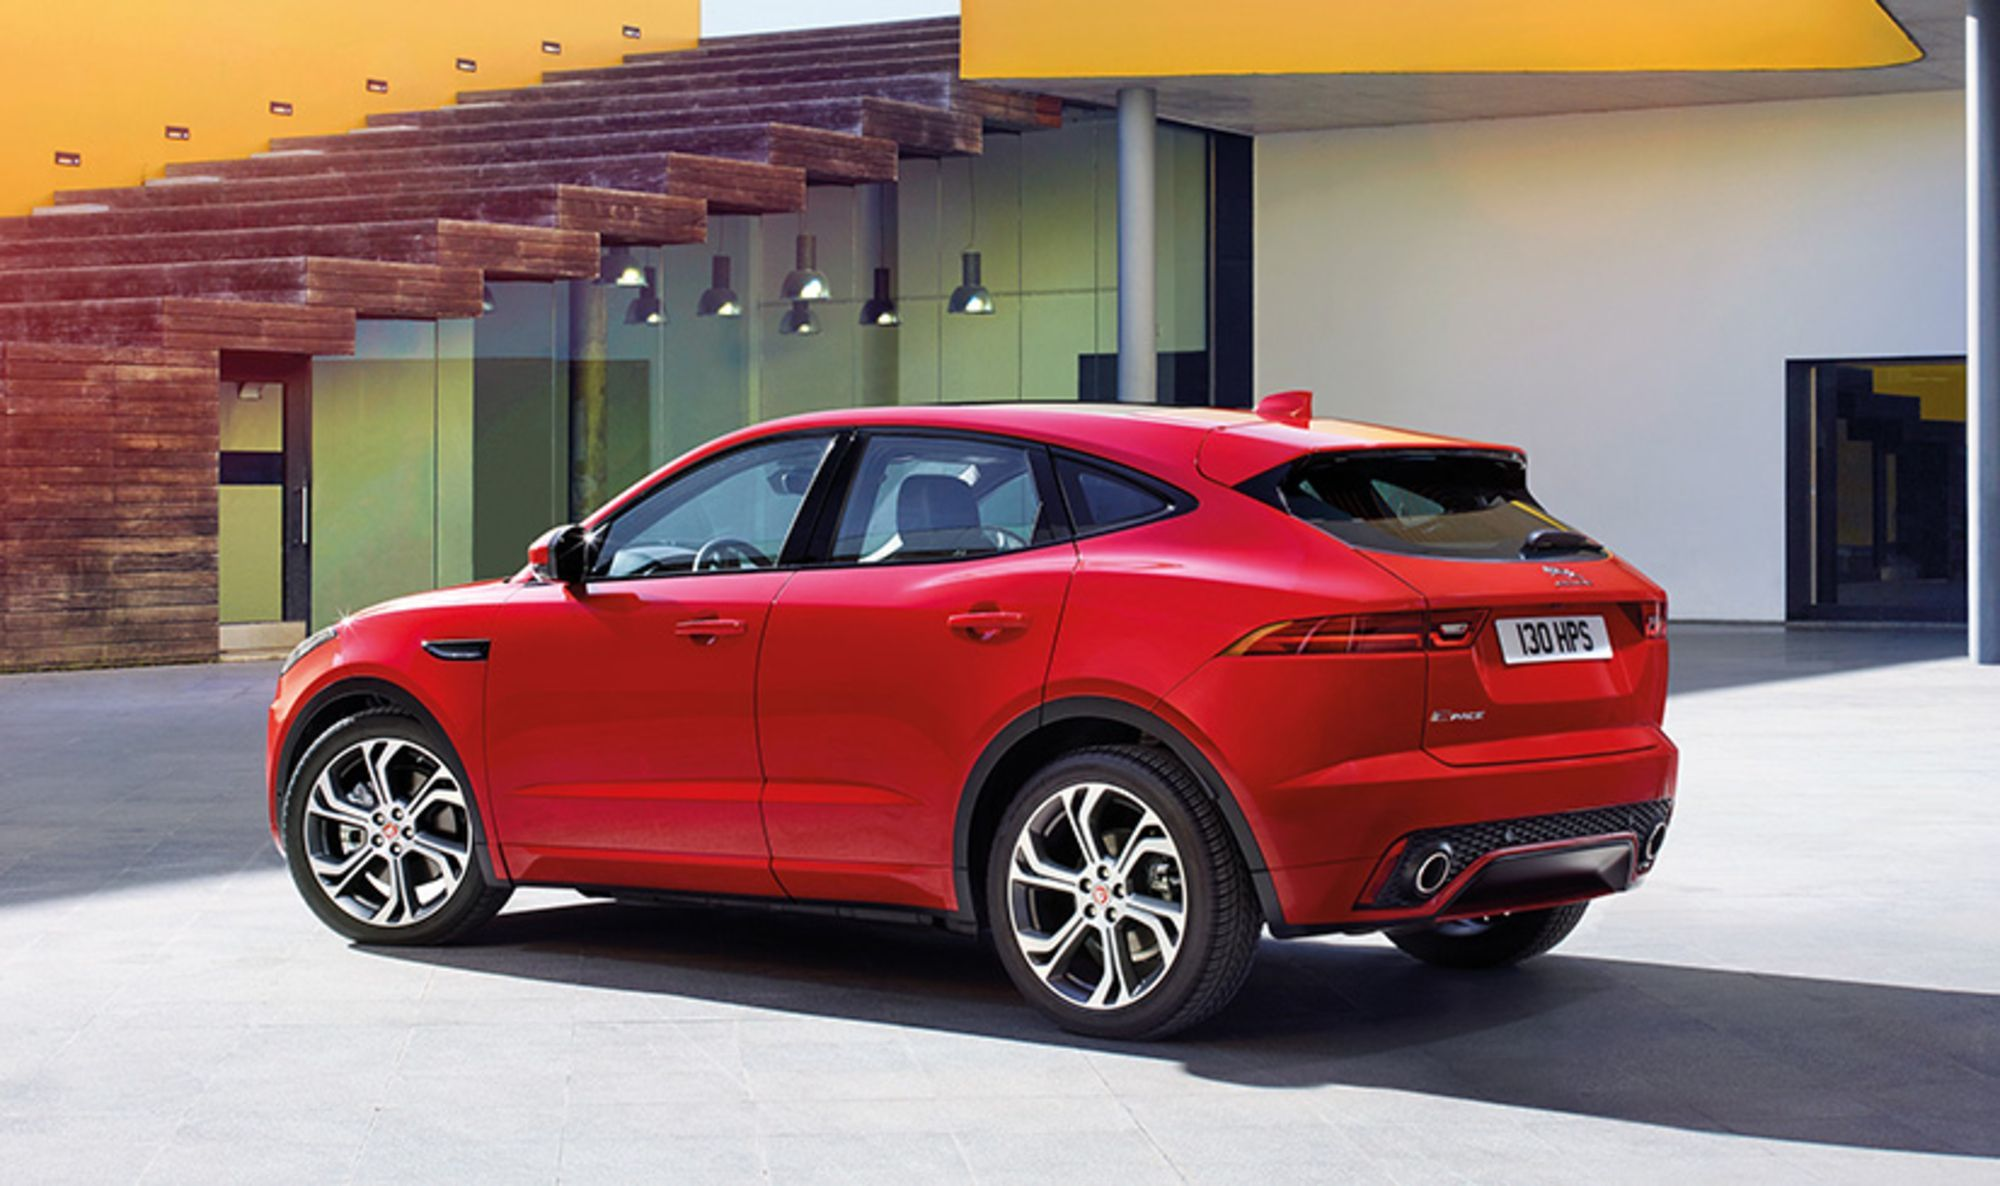 new jaguar e pace for sale on finance part exchange jaguar dealership. Black Bedroom Furniture Sets. Home Design Ideas